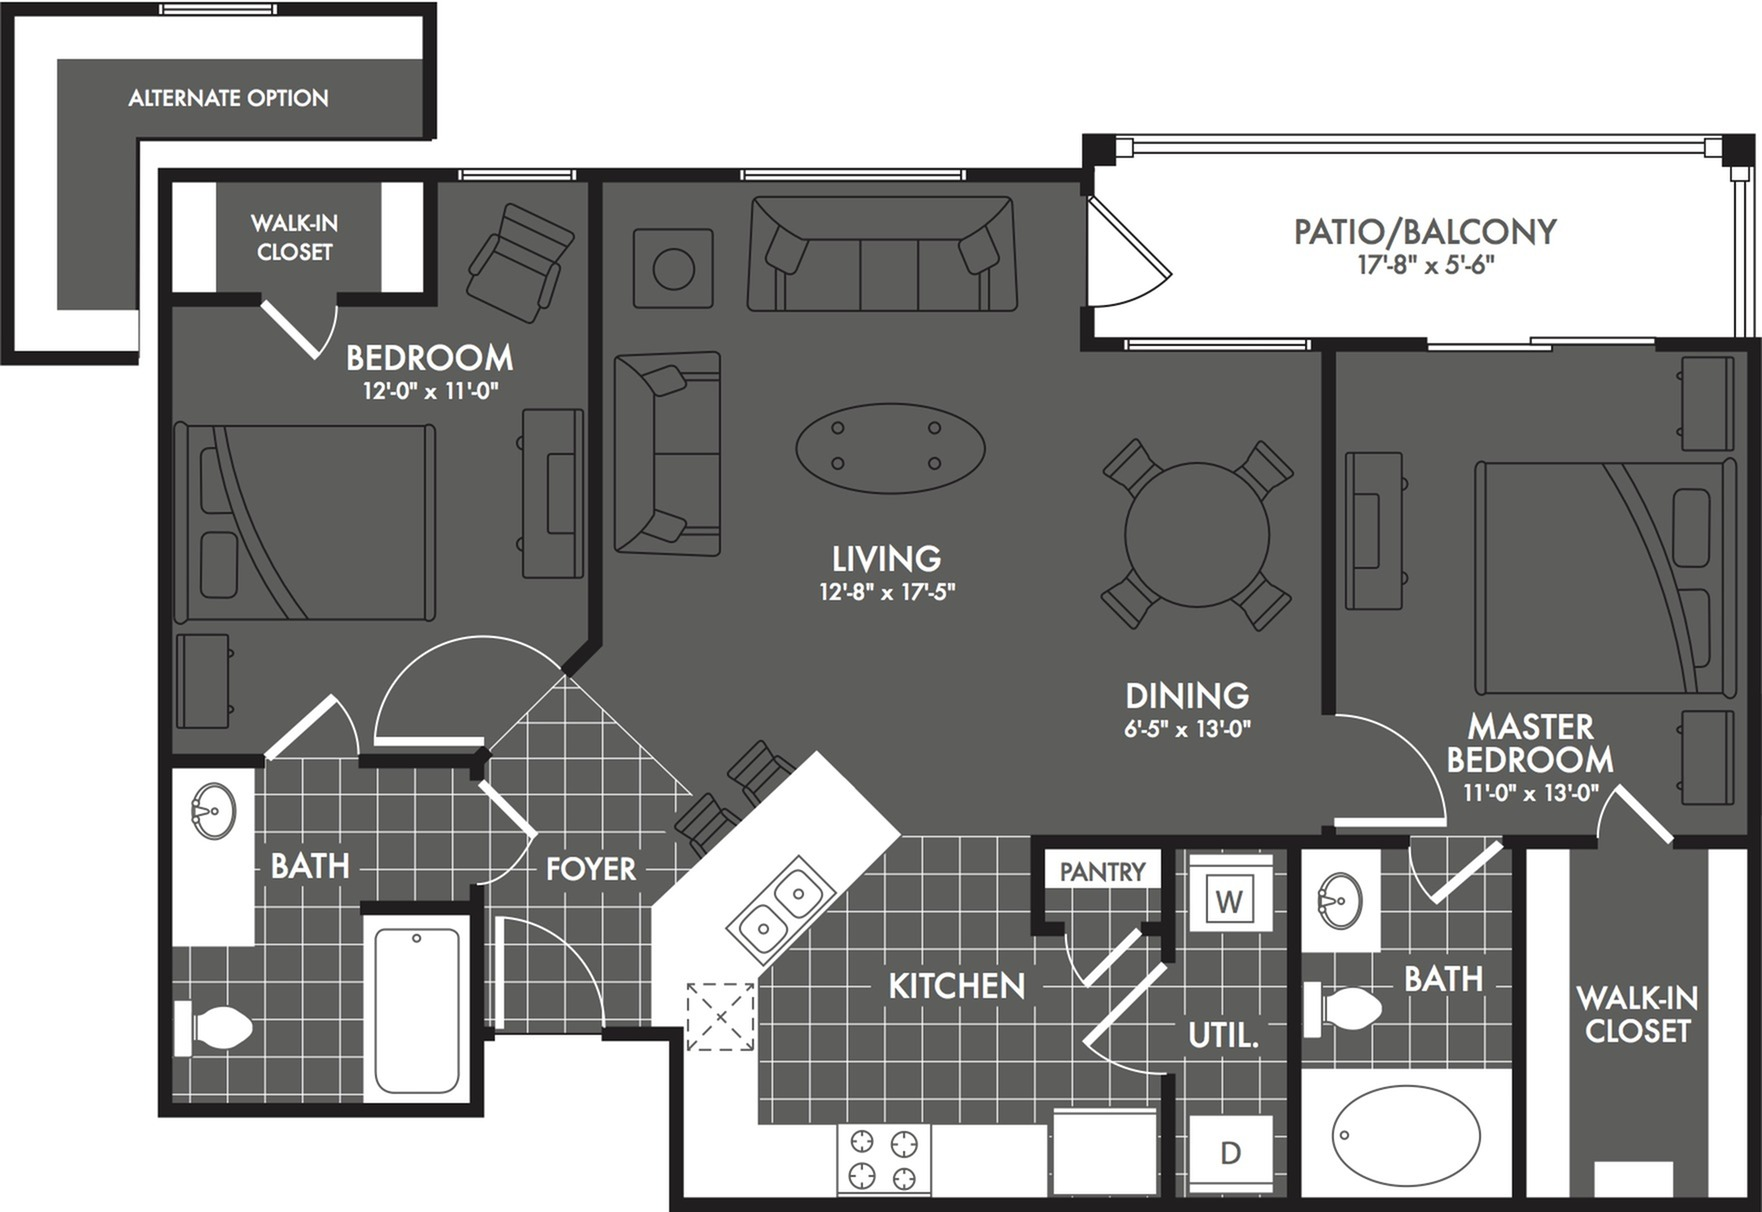 2 Bedroom Floor Plan | Apartments In San Antonio | The Estates at Briggs Ranch